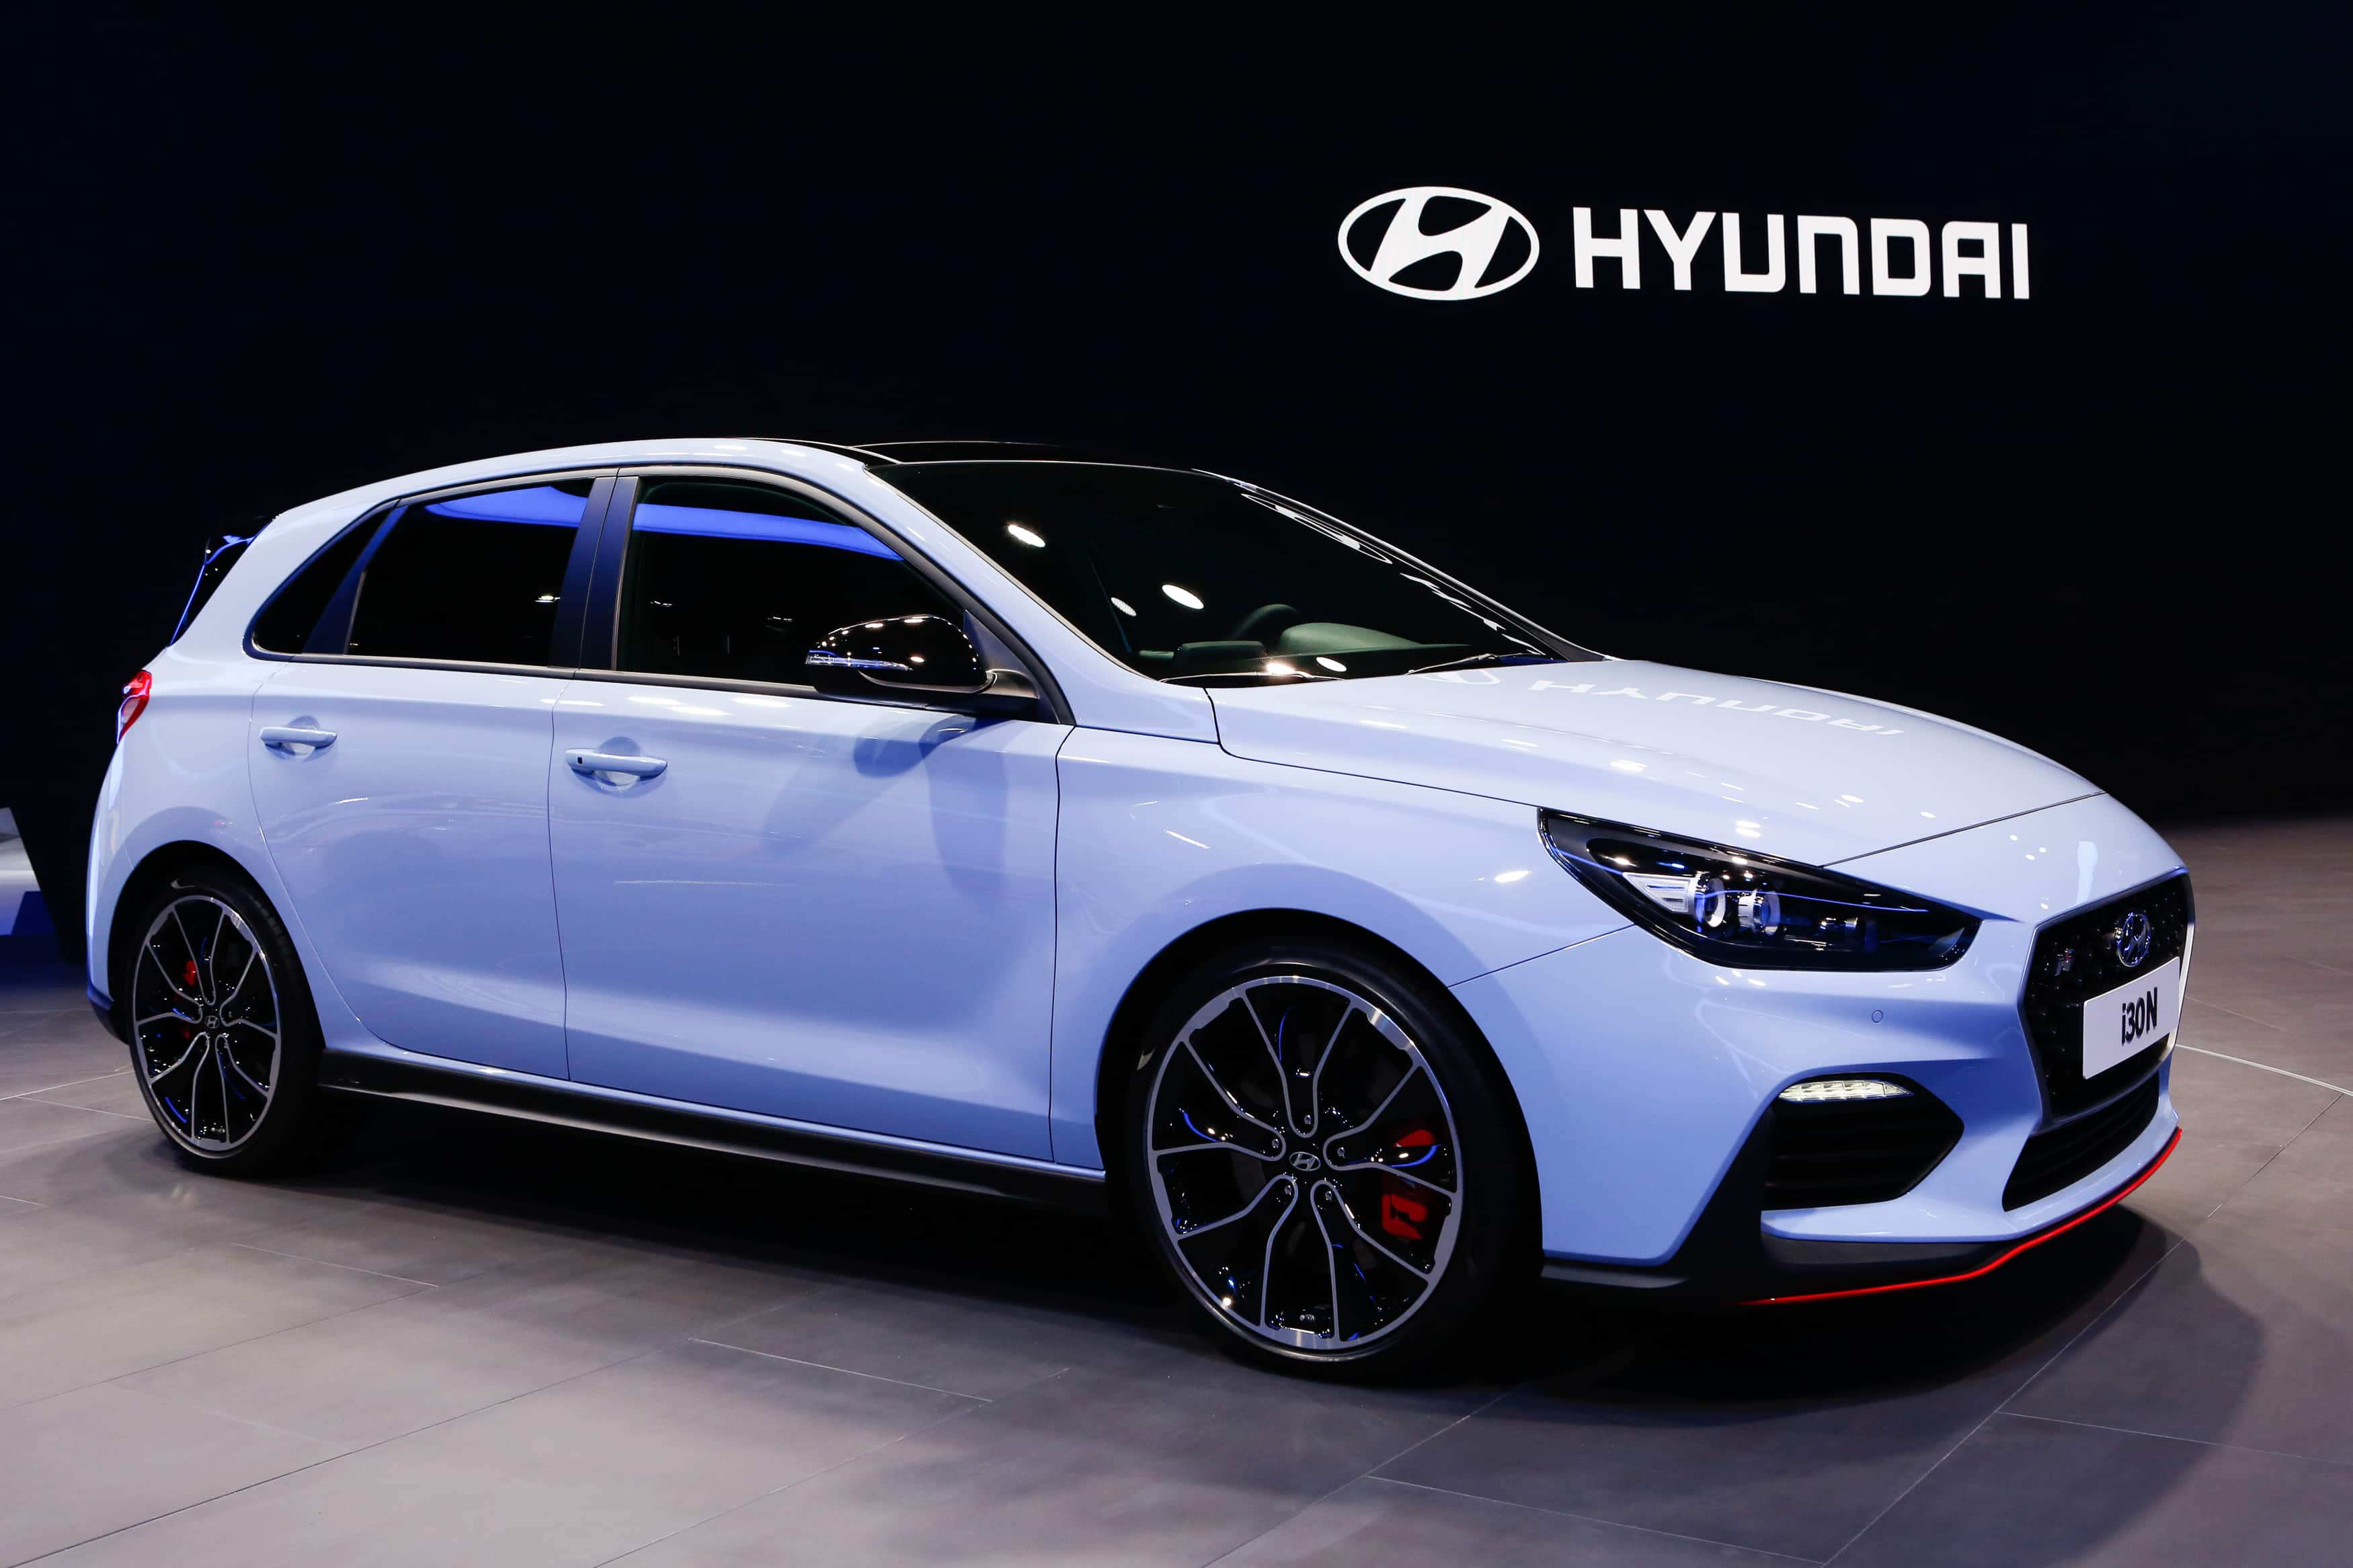 gray dealership matte sale in best wi lease dahl new htm crosse veloster ext used download la hyundai deals prices com for